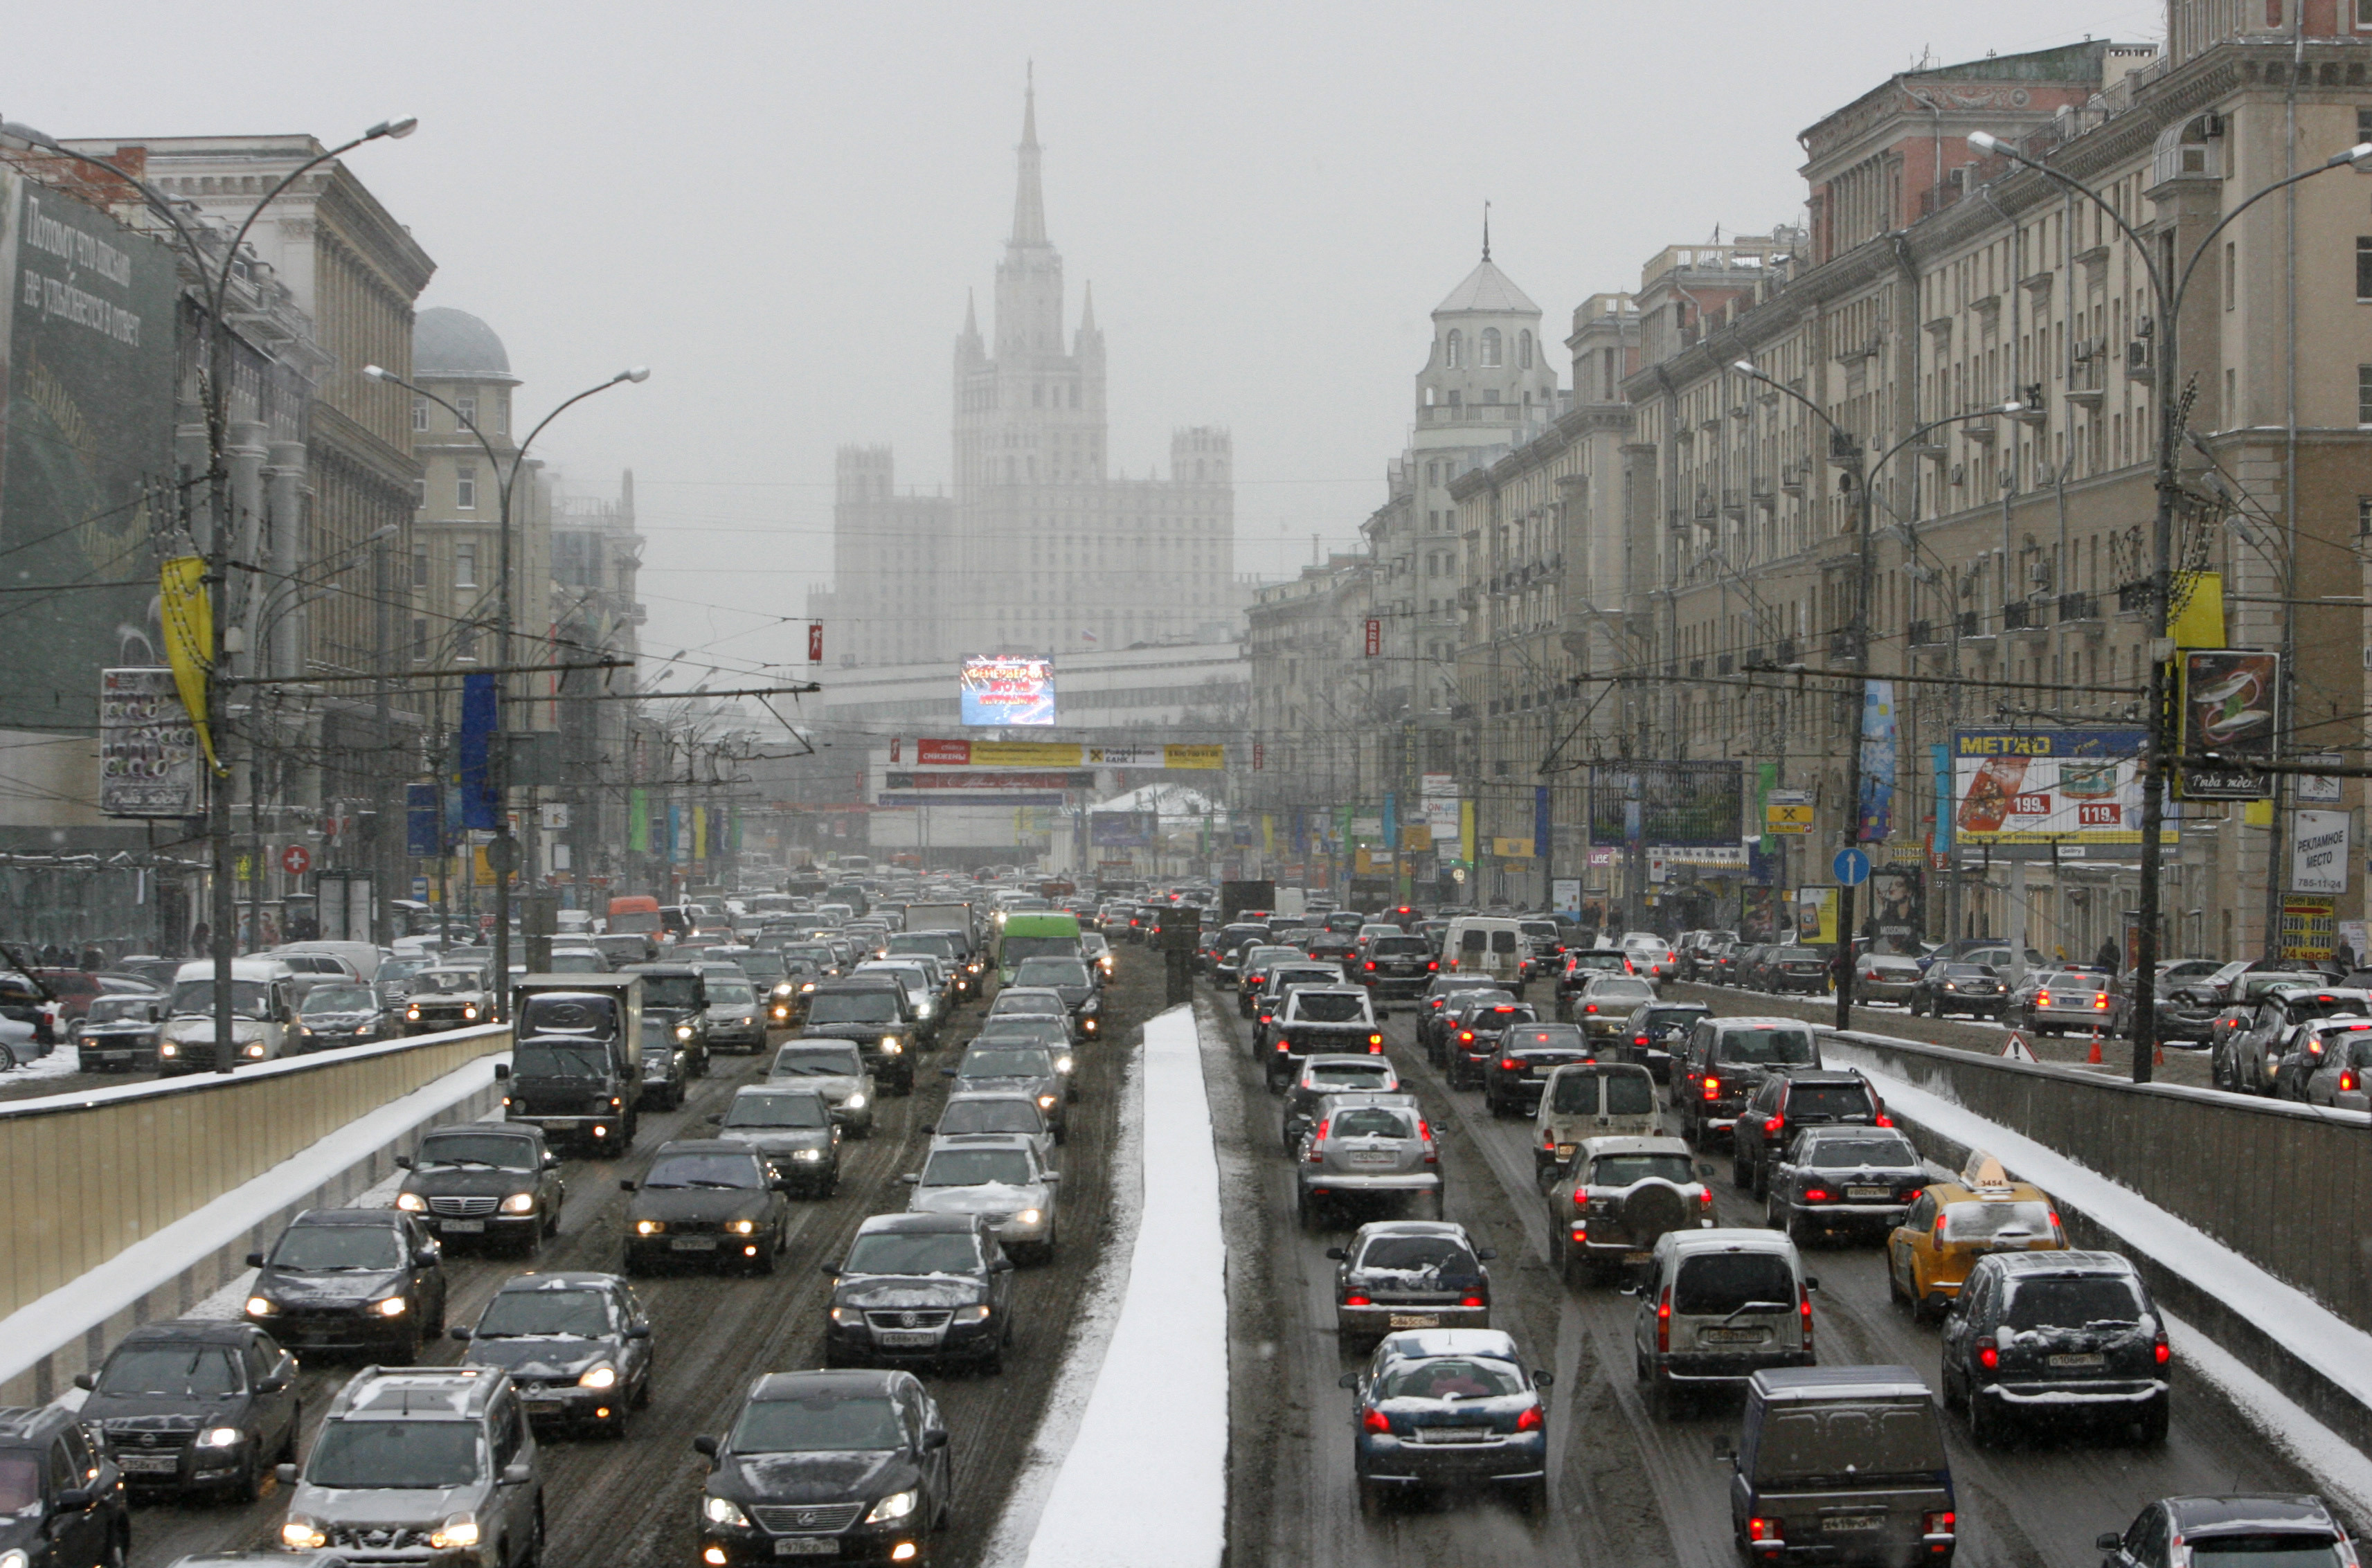 Cars move under a snowfall in central Moscow December 29, 2009.  REUTERS/Sergei Karpukhin